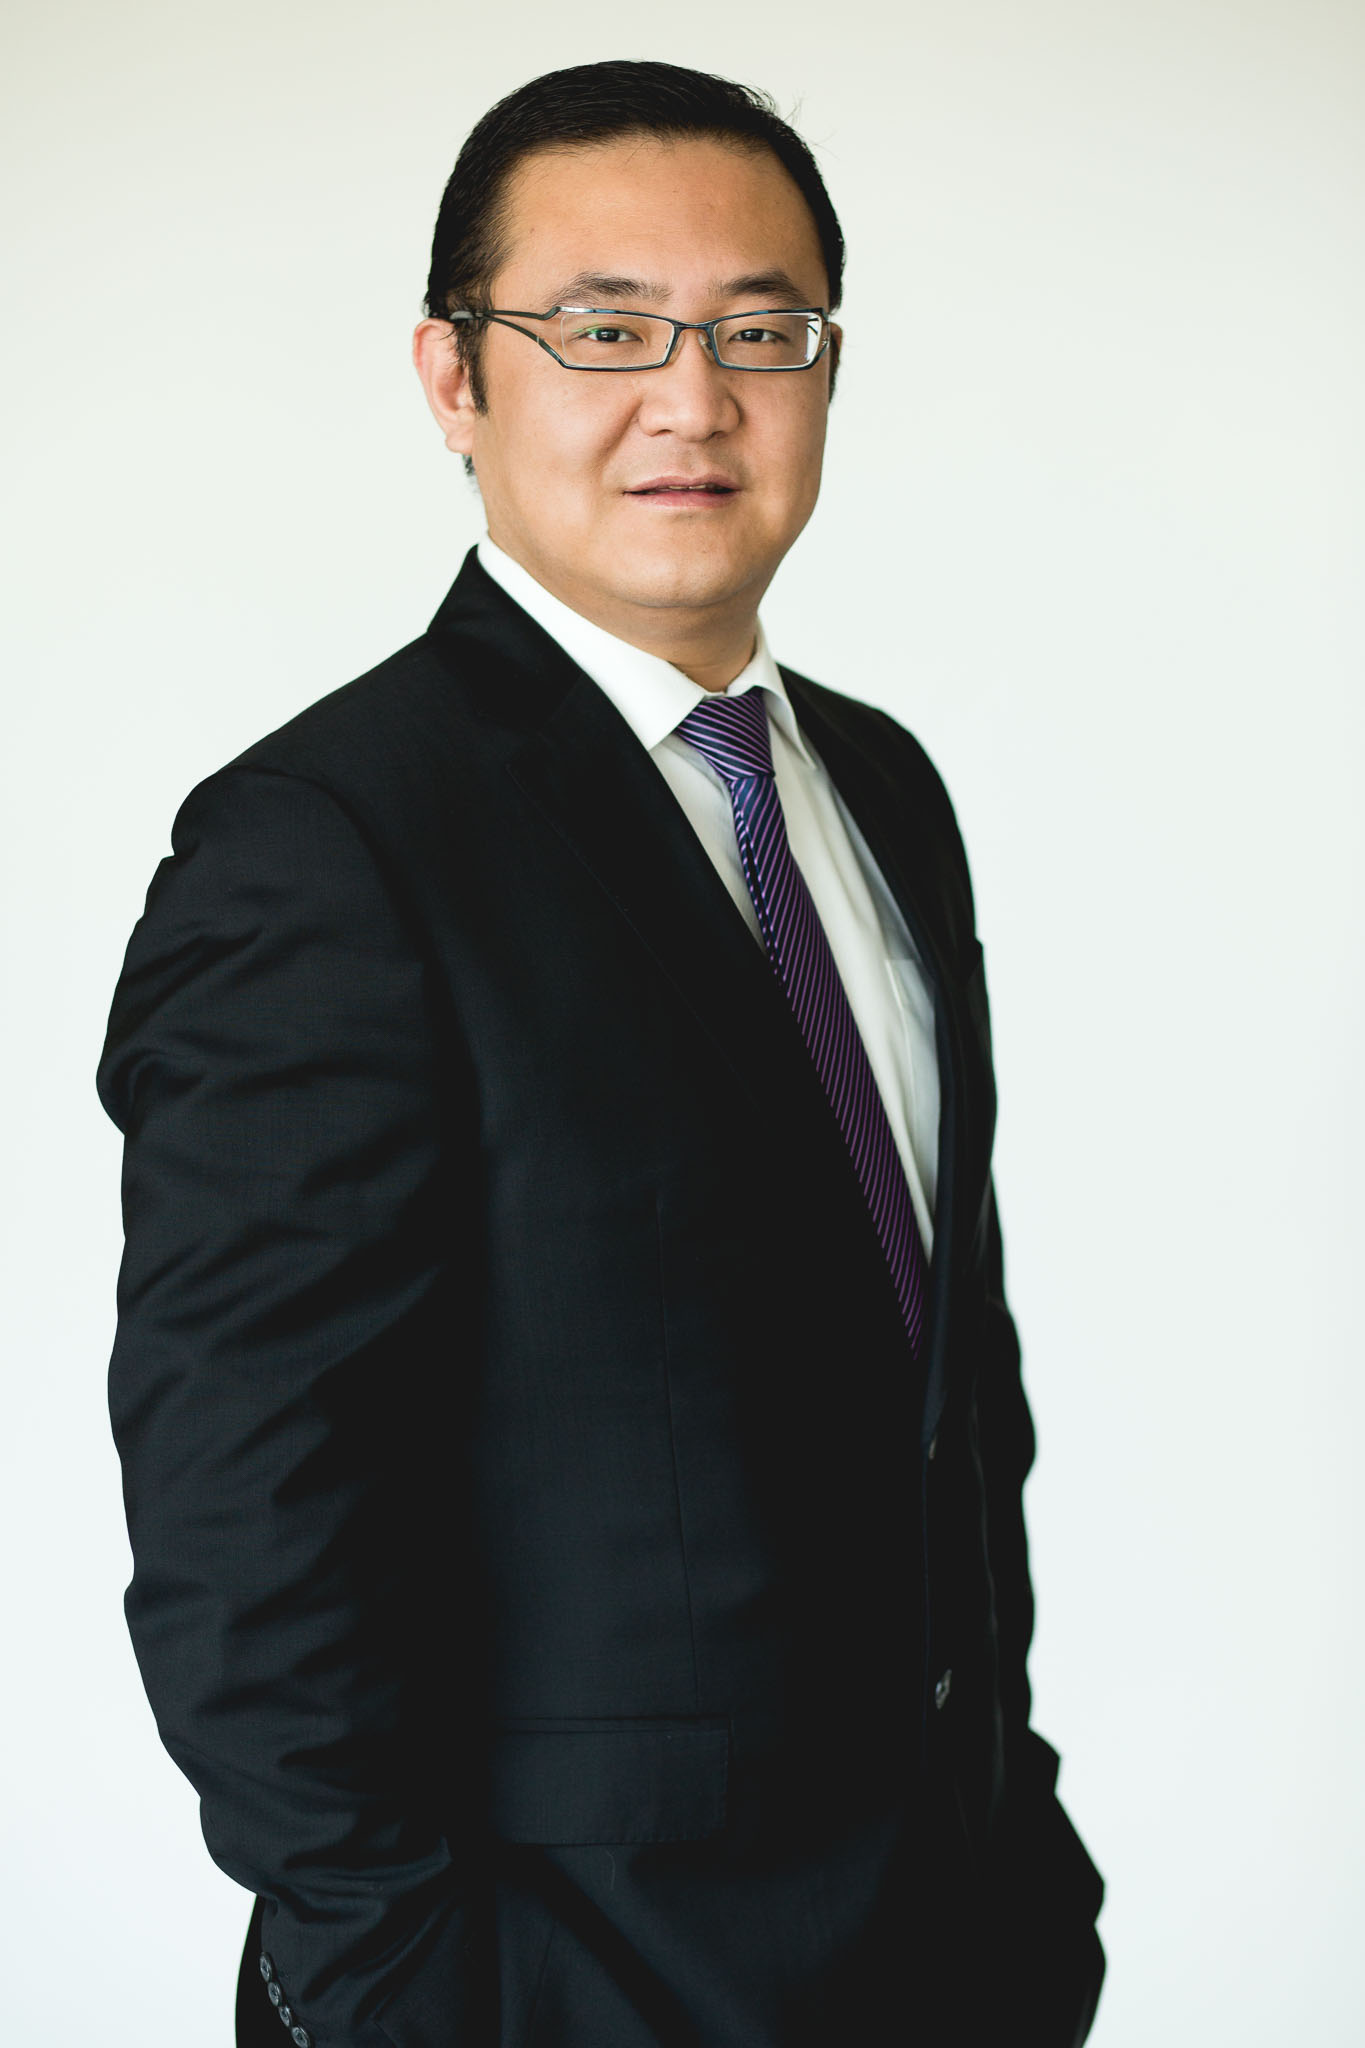 Tao Jiang, Investment Advisor - Mandeville Private Client Inc.